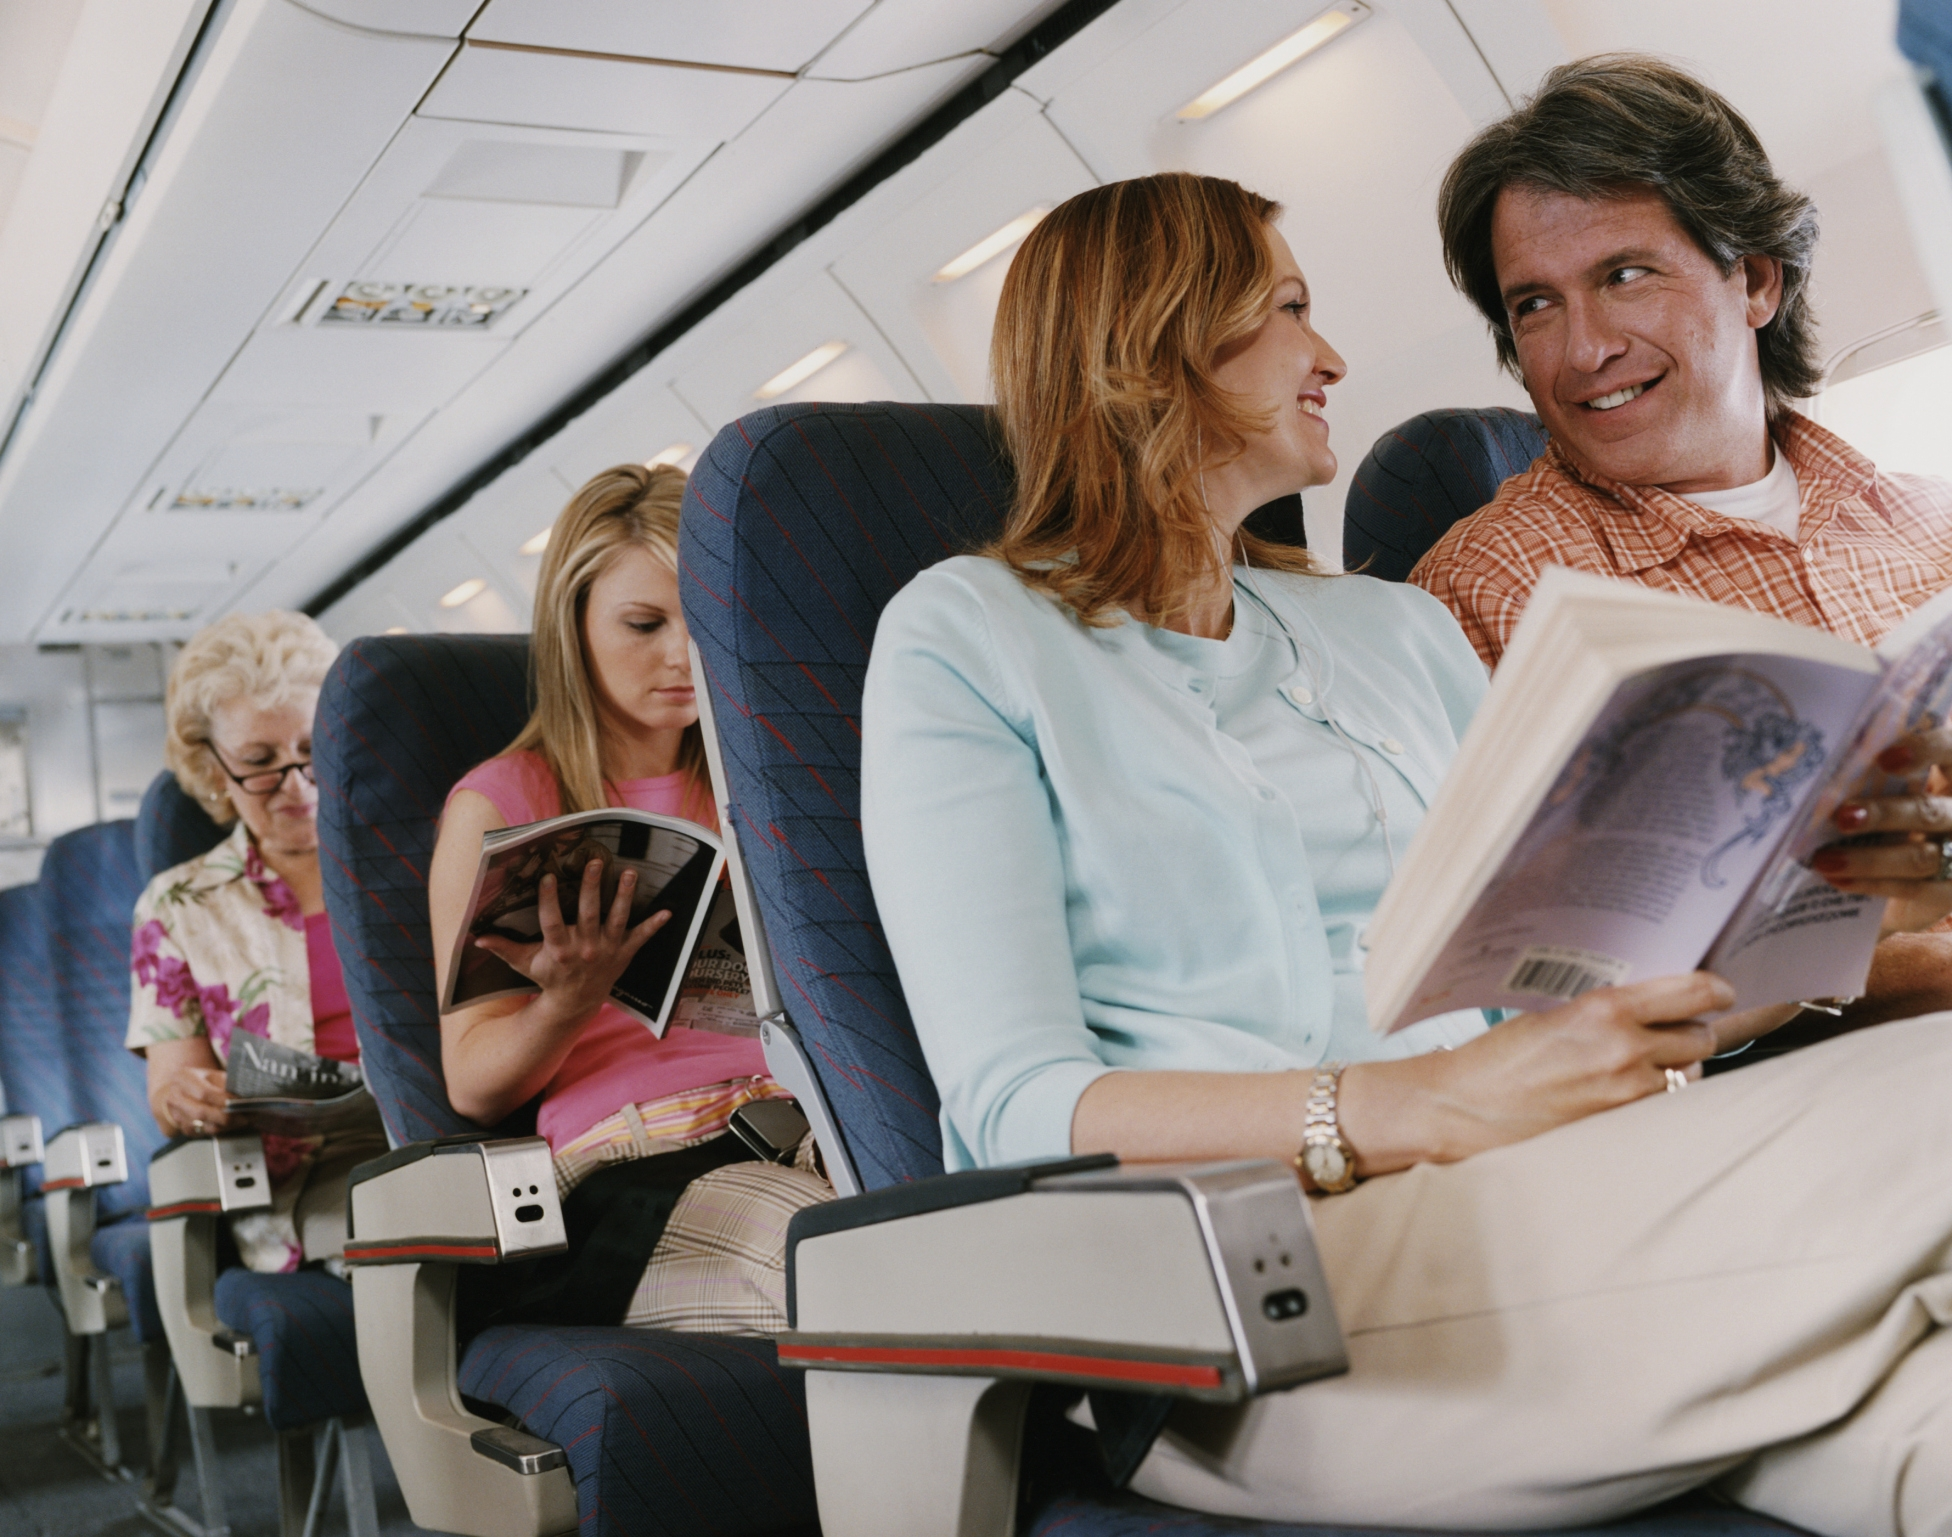 1 in 50 people finds love on an airplane, HSBC study claims | CNN Travel